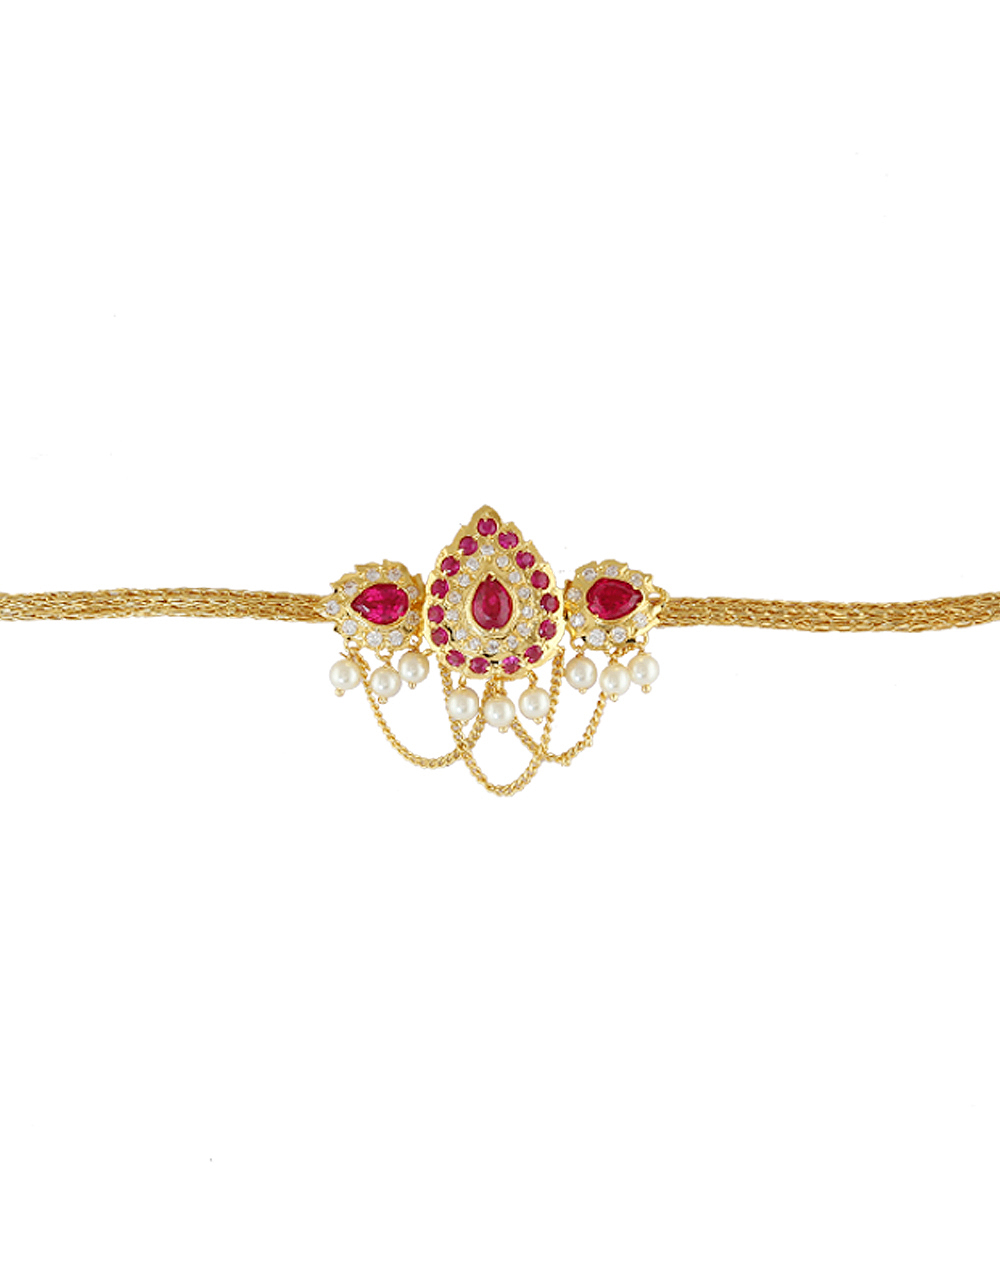 Pink Colour Gold Finish Moti Styled Bajuband For Girls